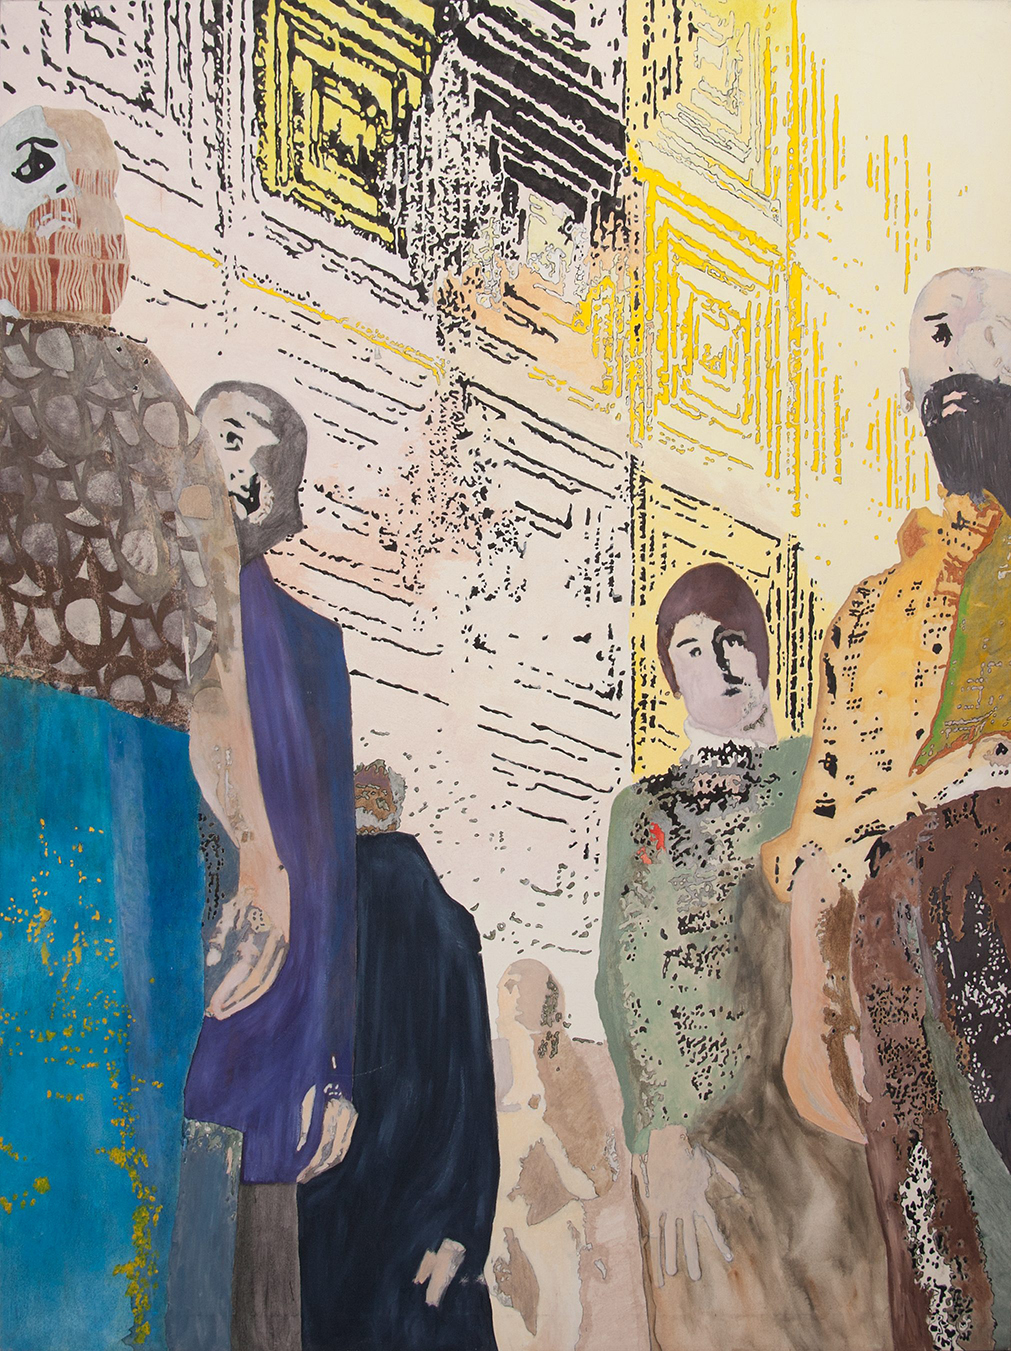 Bystanders, 2010. Acrylic on canvas, 150 x 185 cm